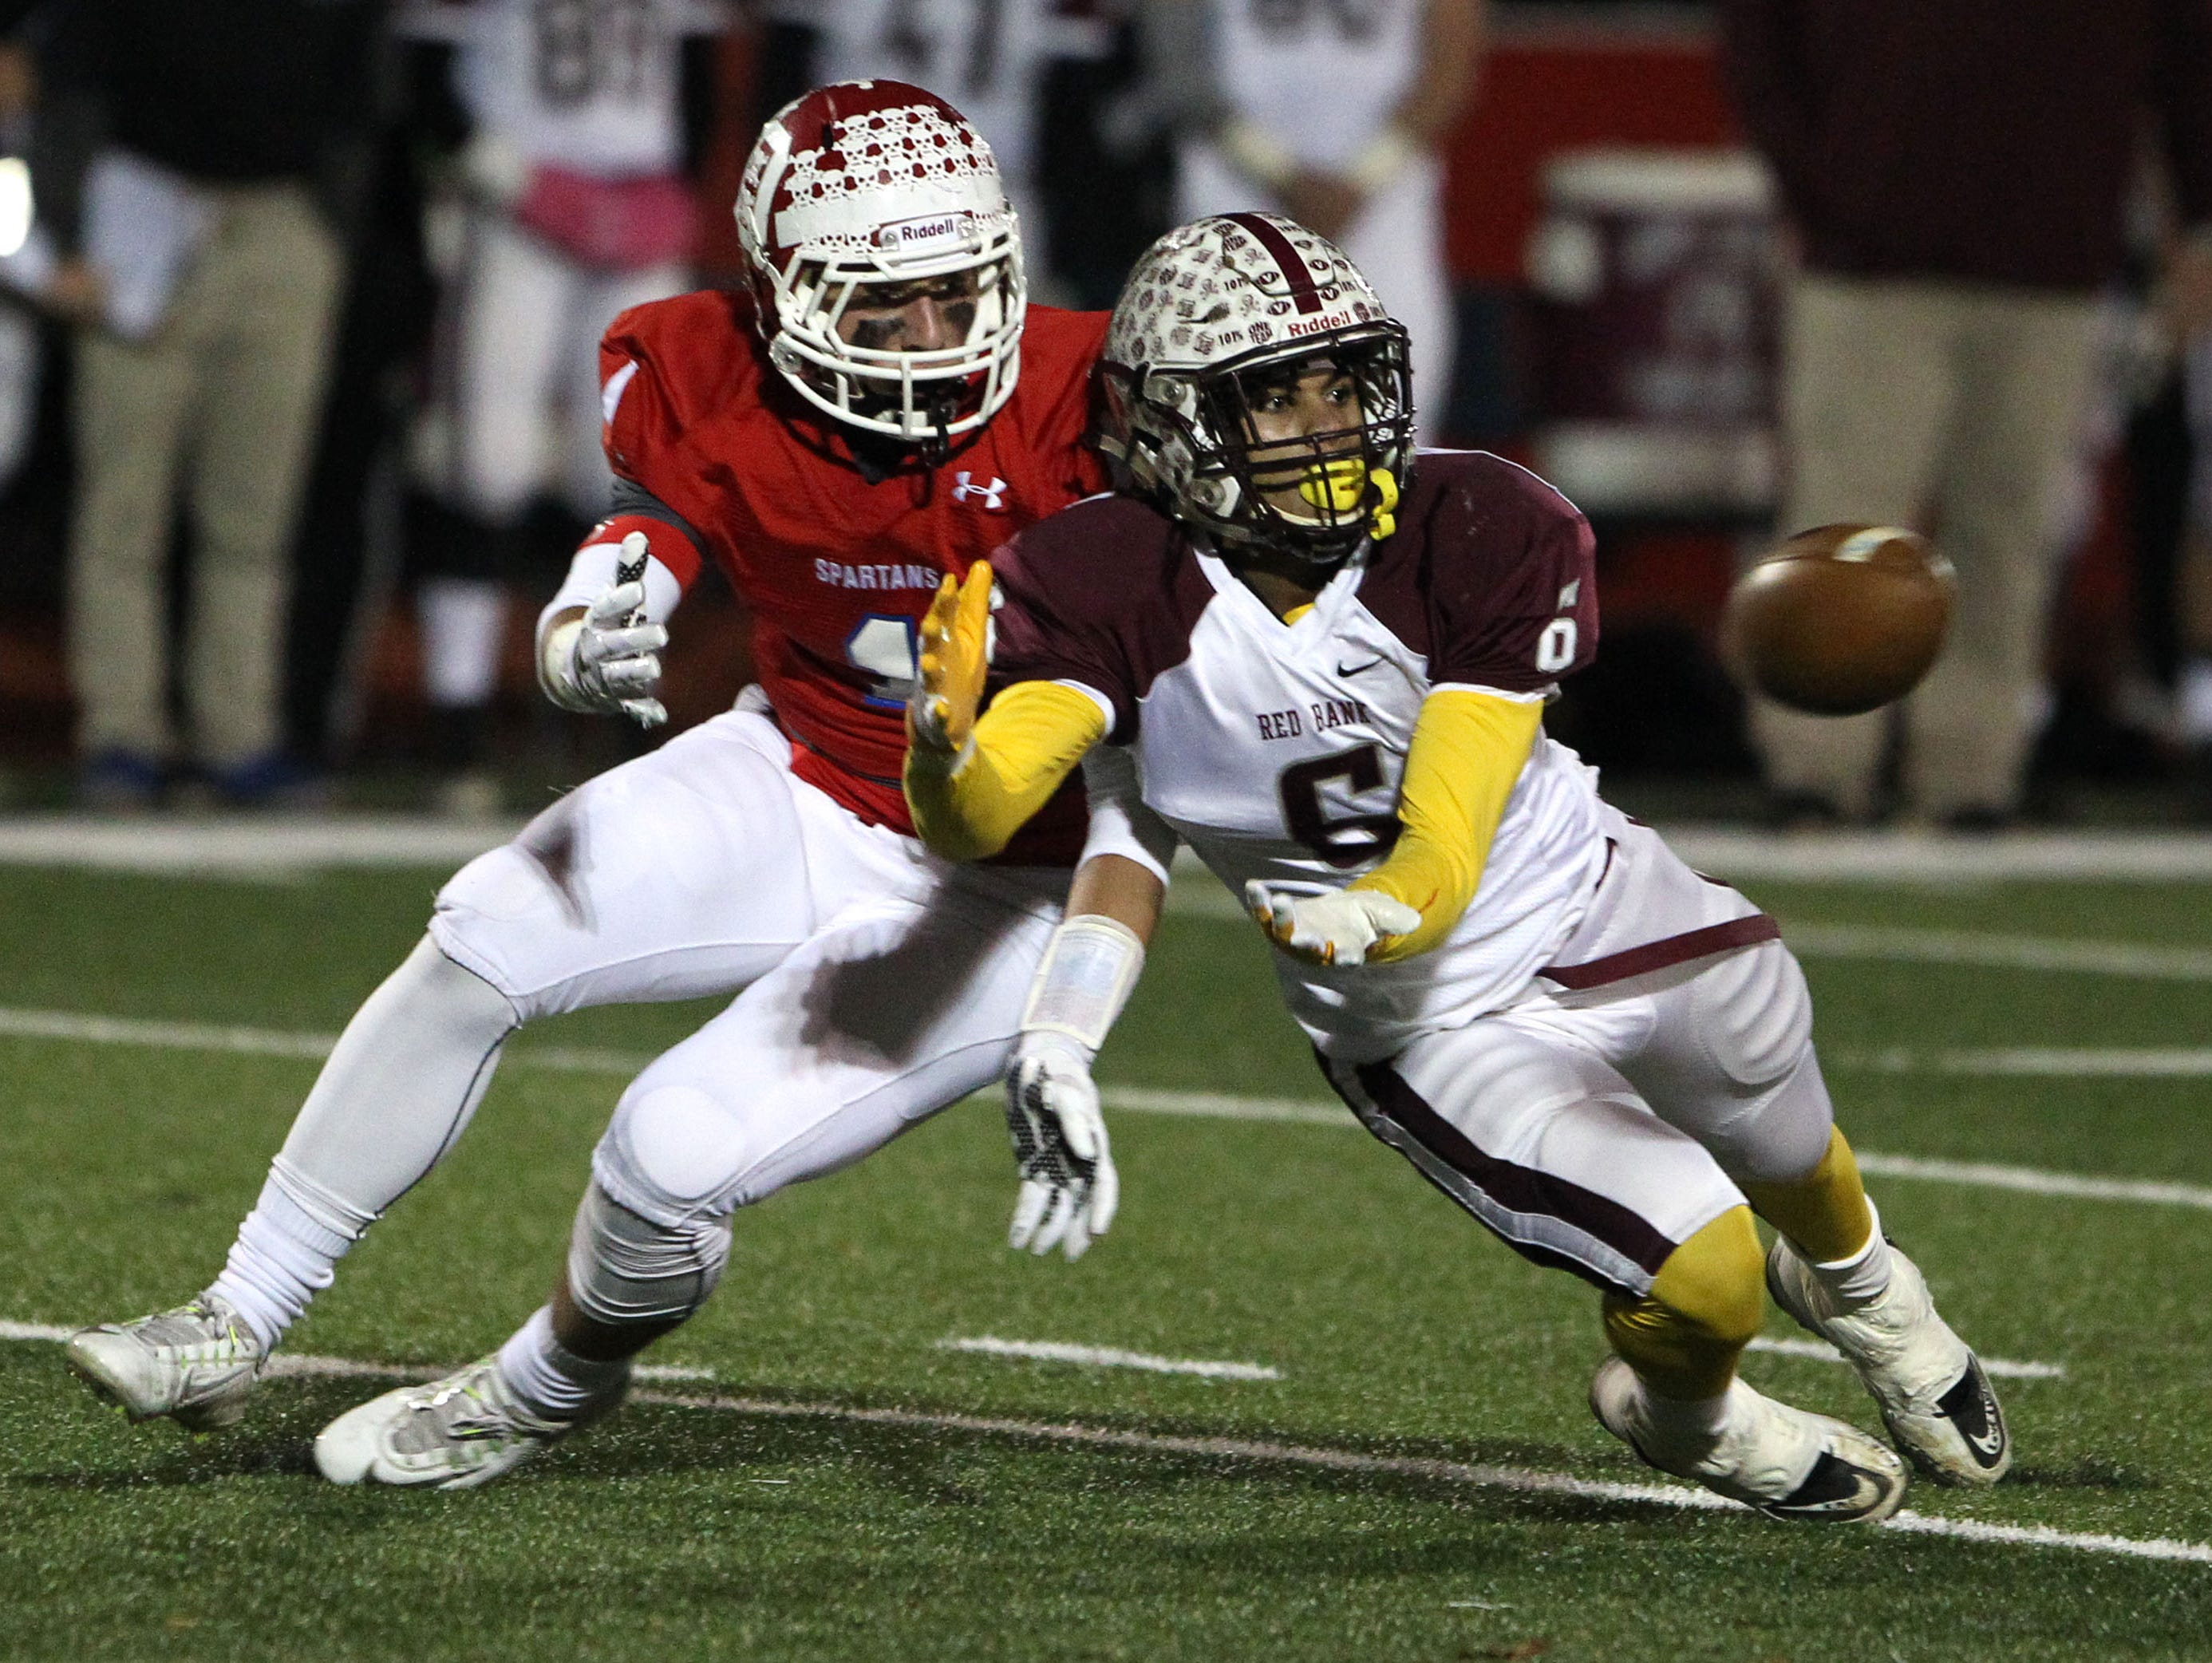 Talented senior wide receiver/running back/defensive back Sadiq Palmer (No. 6) has been a major reason .Red Bank Regional has been the Shore Conference's surprise team this season.